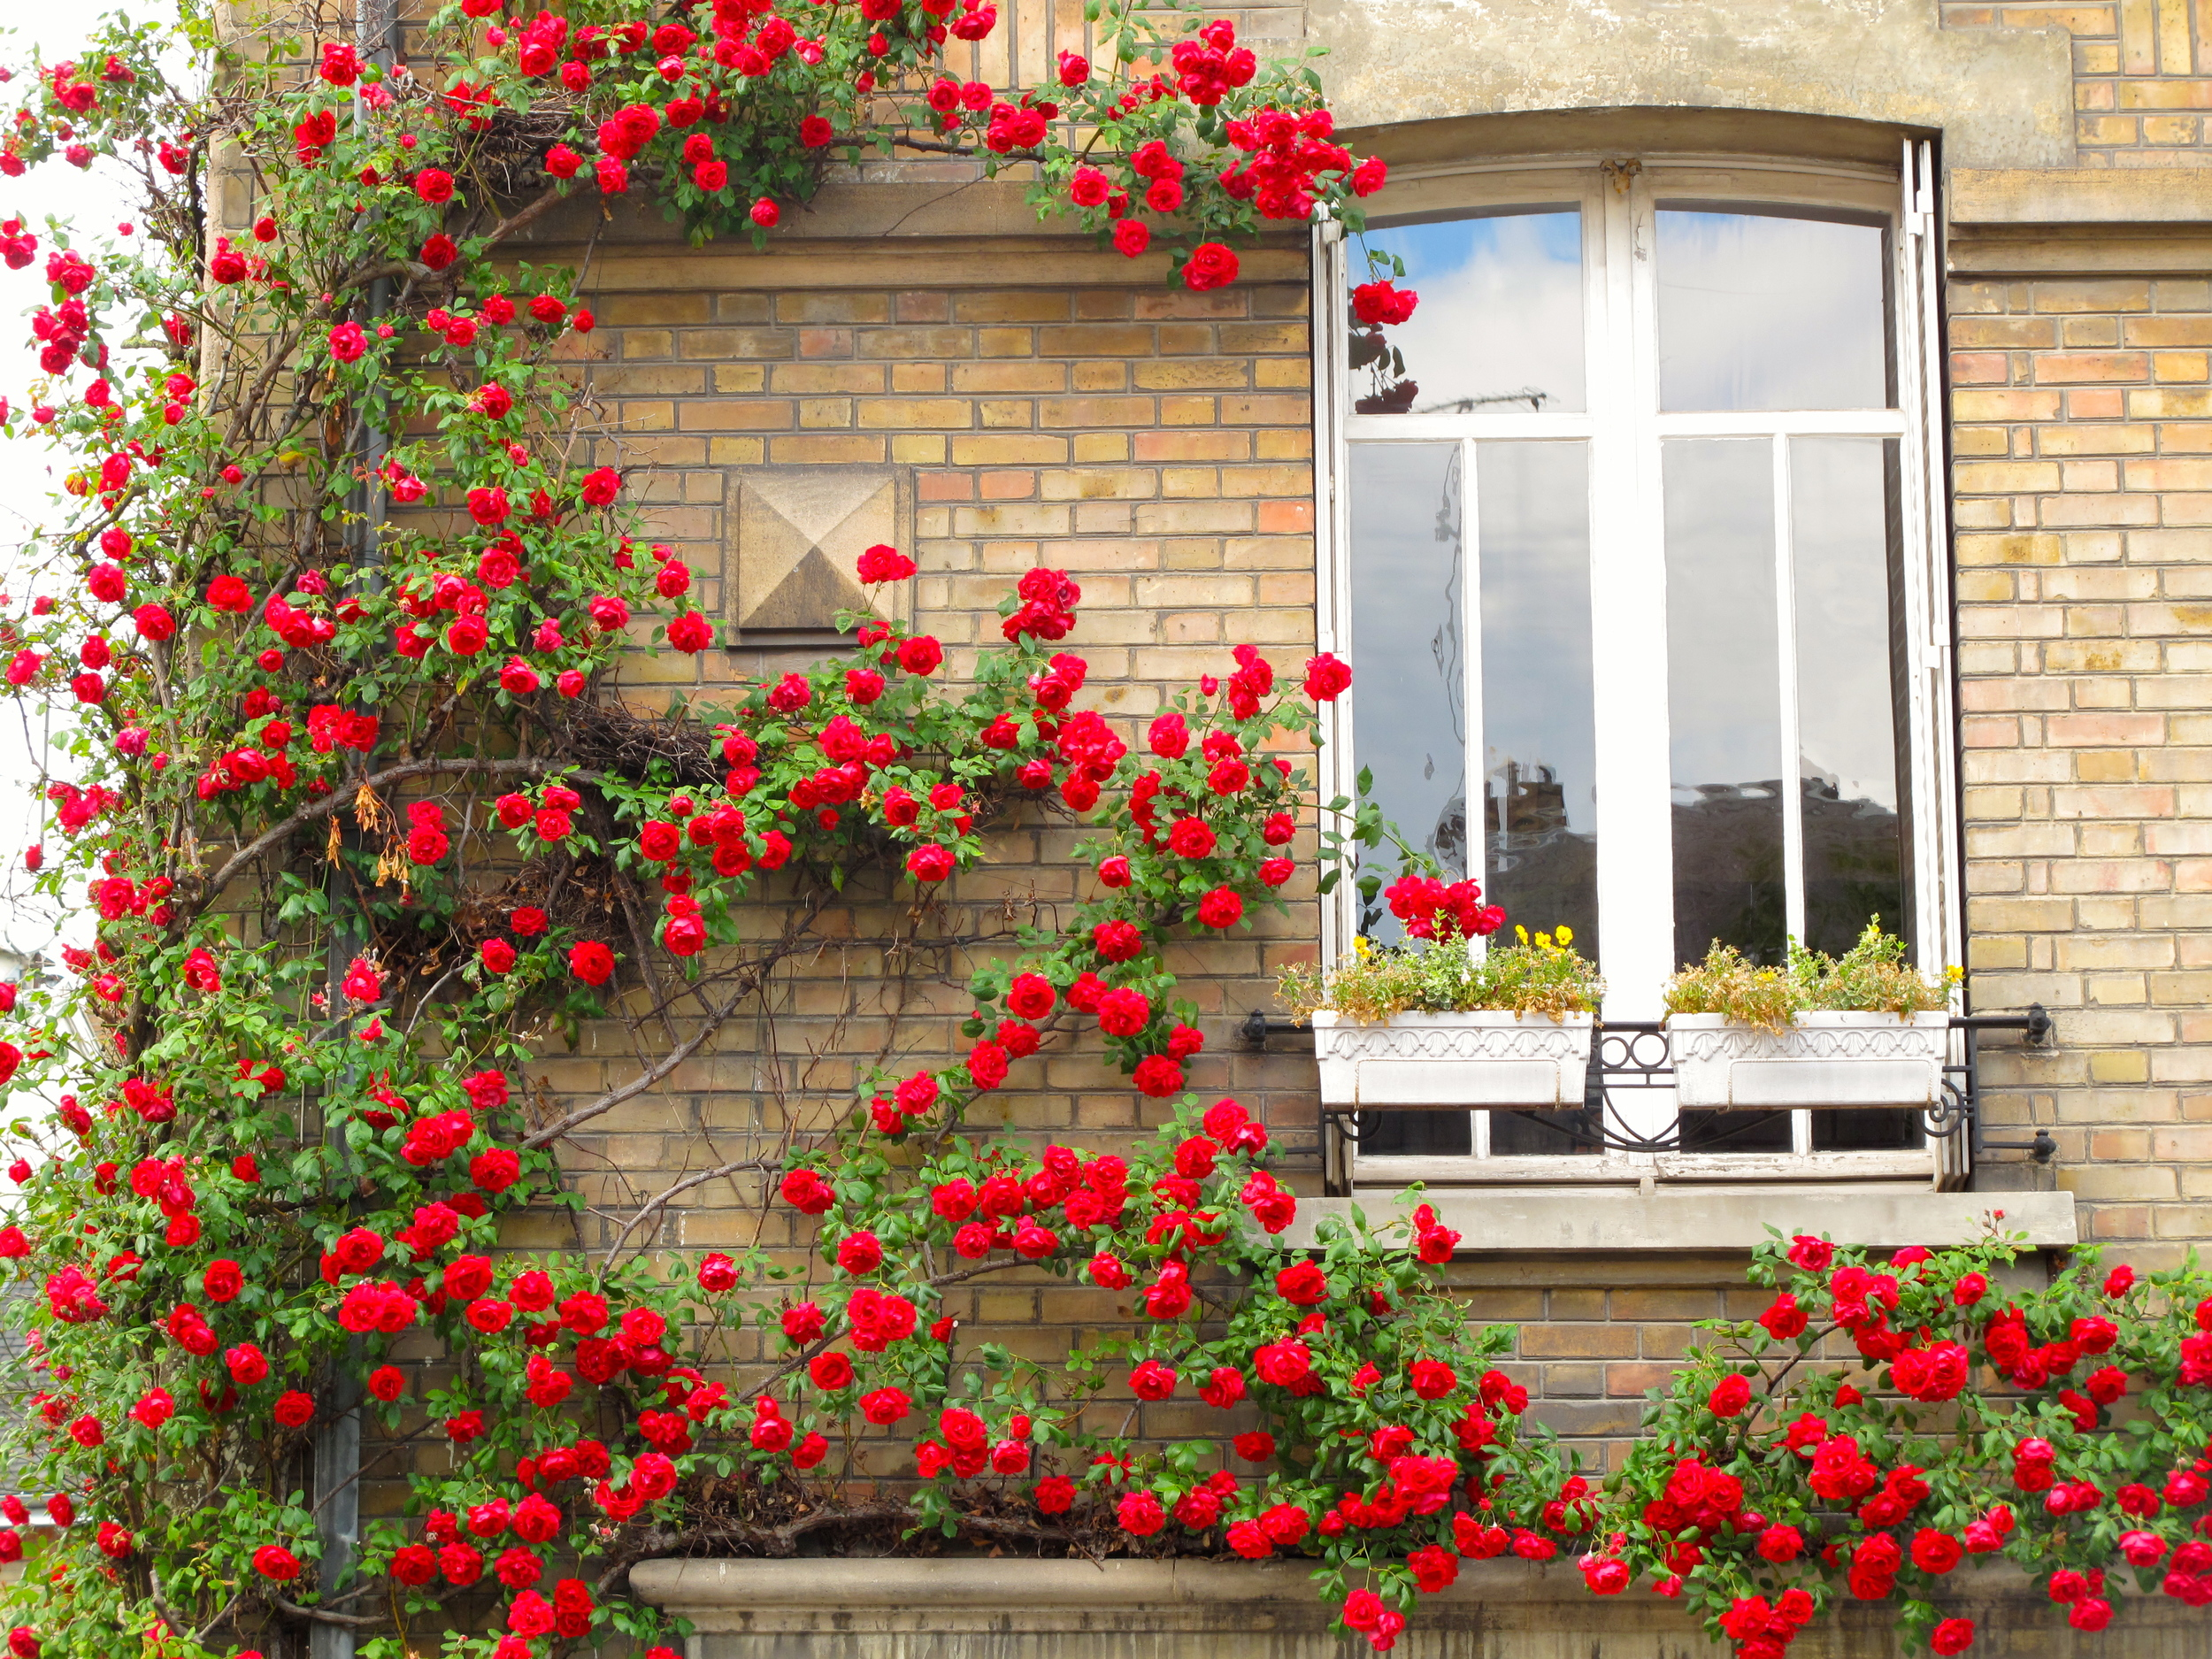 Roses in Reims on a stone-walled house